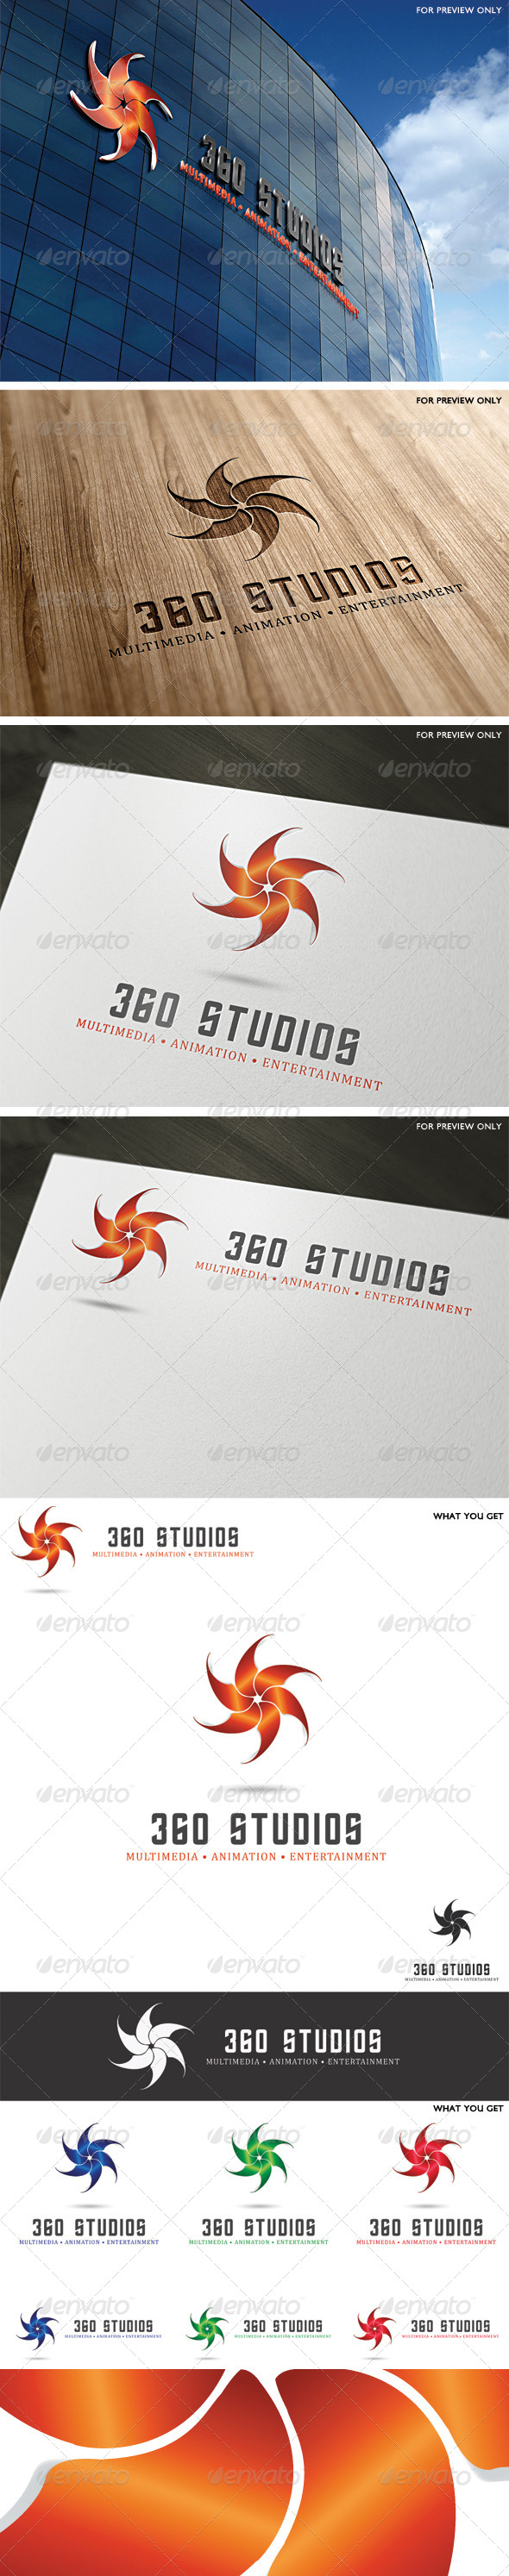 360 Studios Logo Template - Vector Abstract